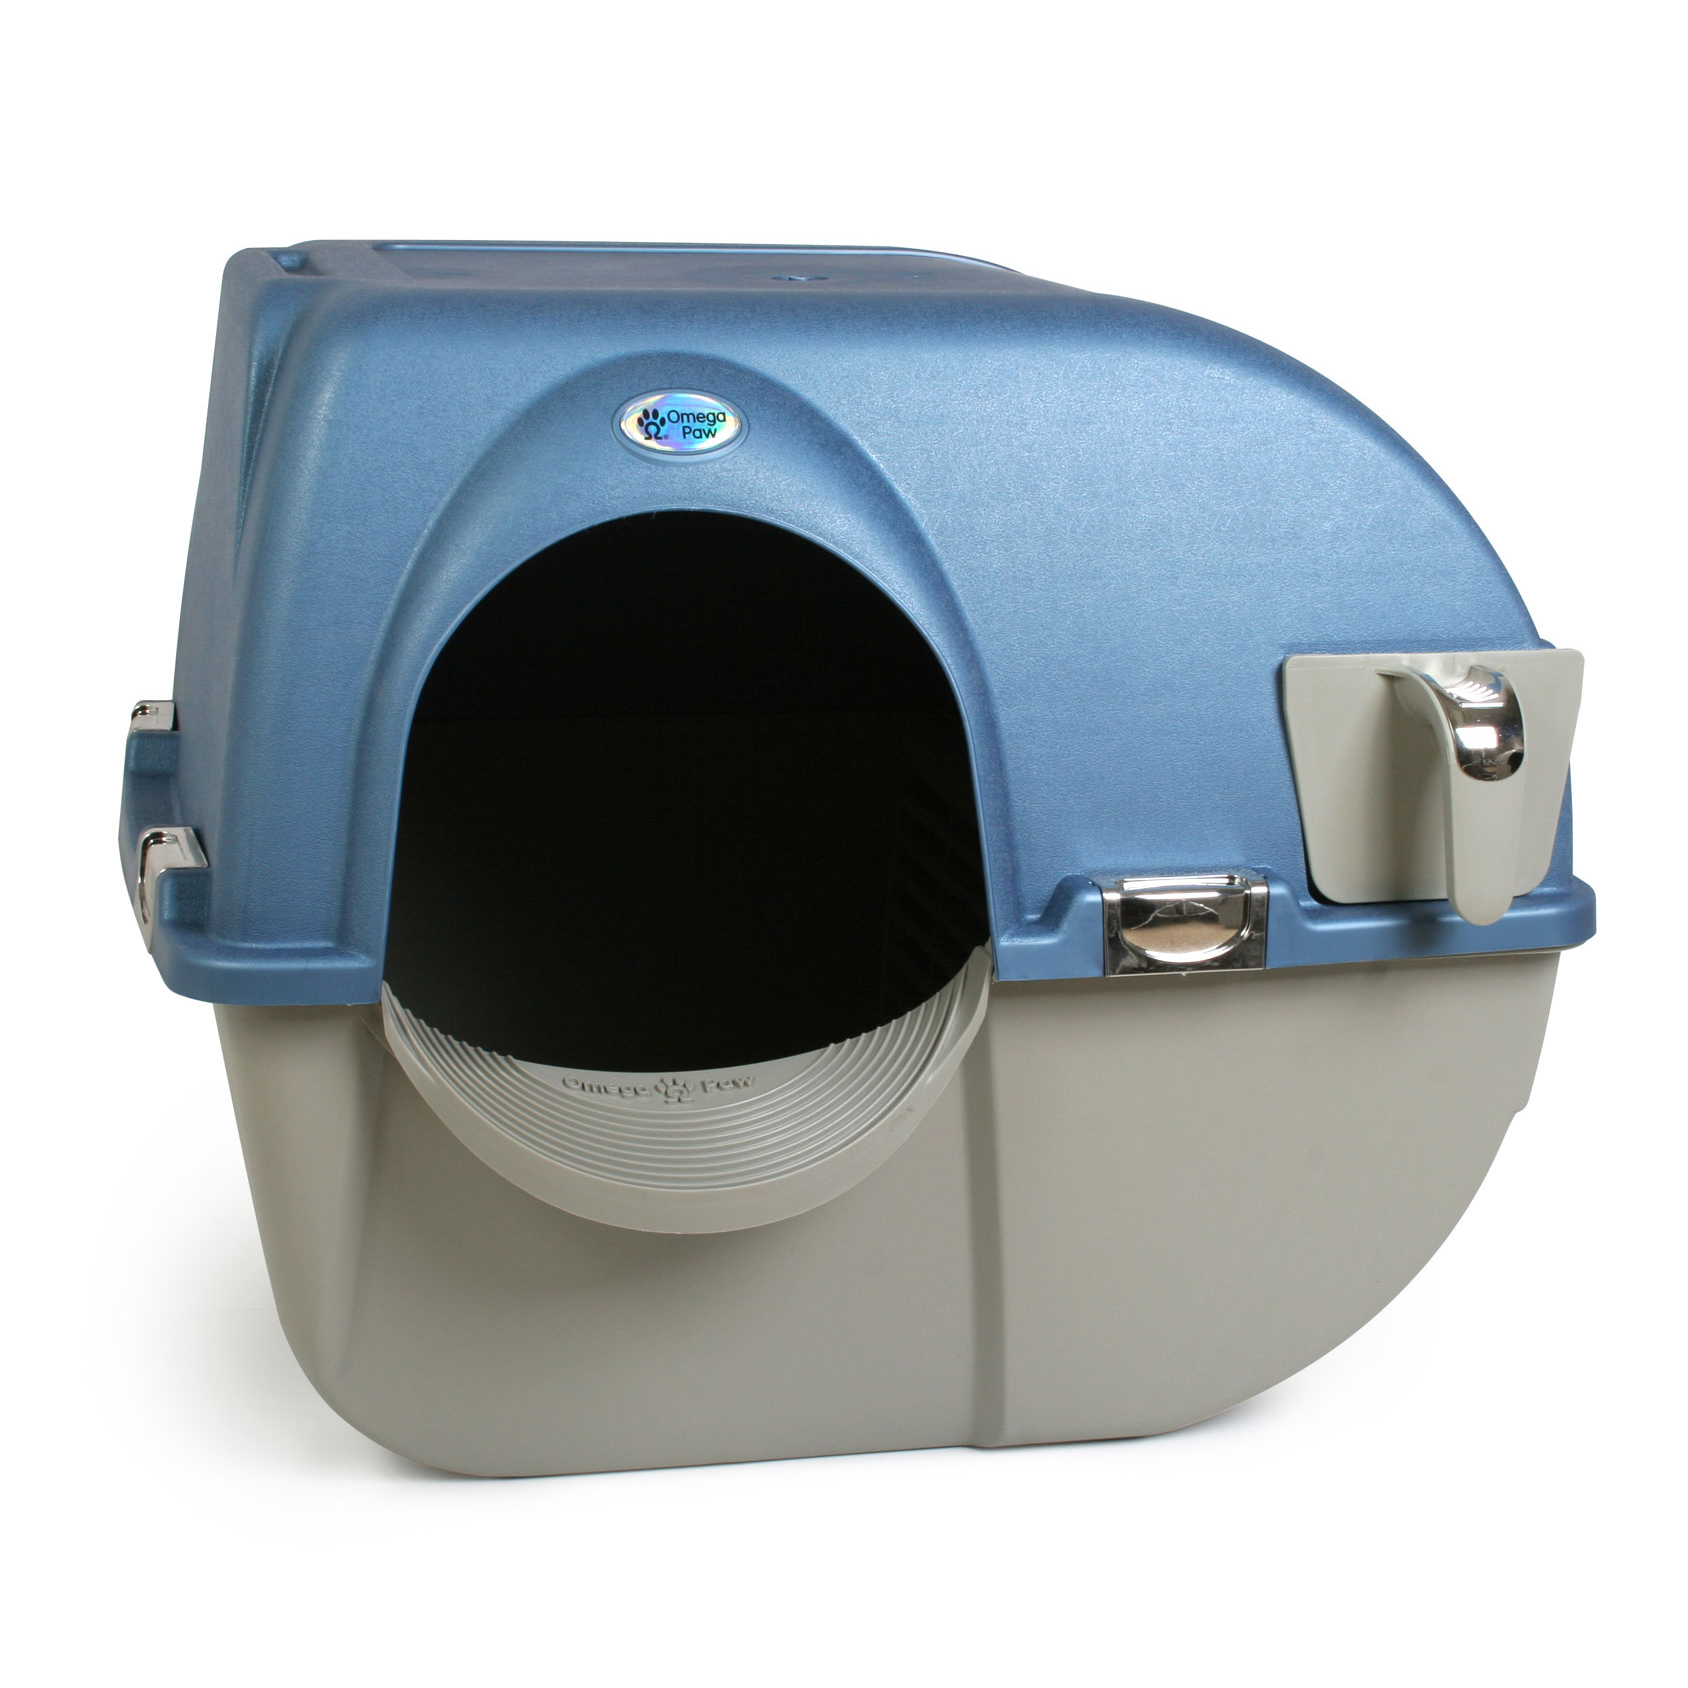 omega-paw-premium-roll-n-clean-self-cleaning-cat-litter-box